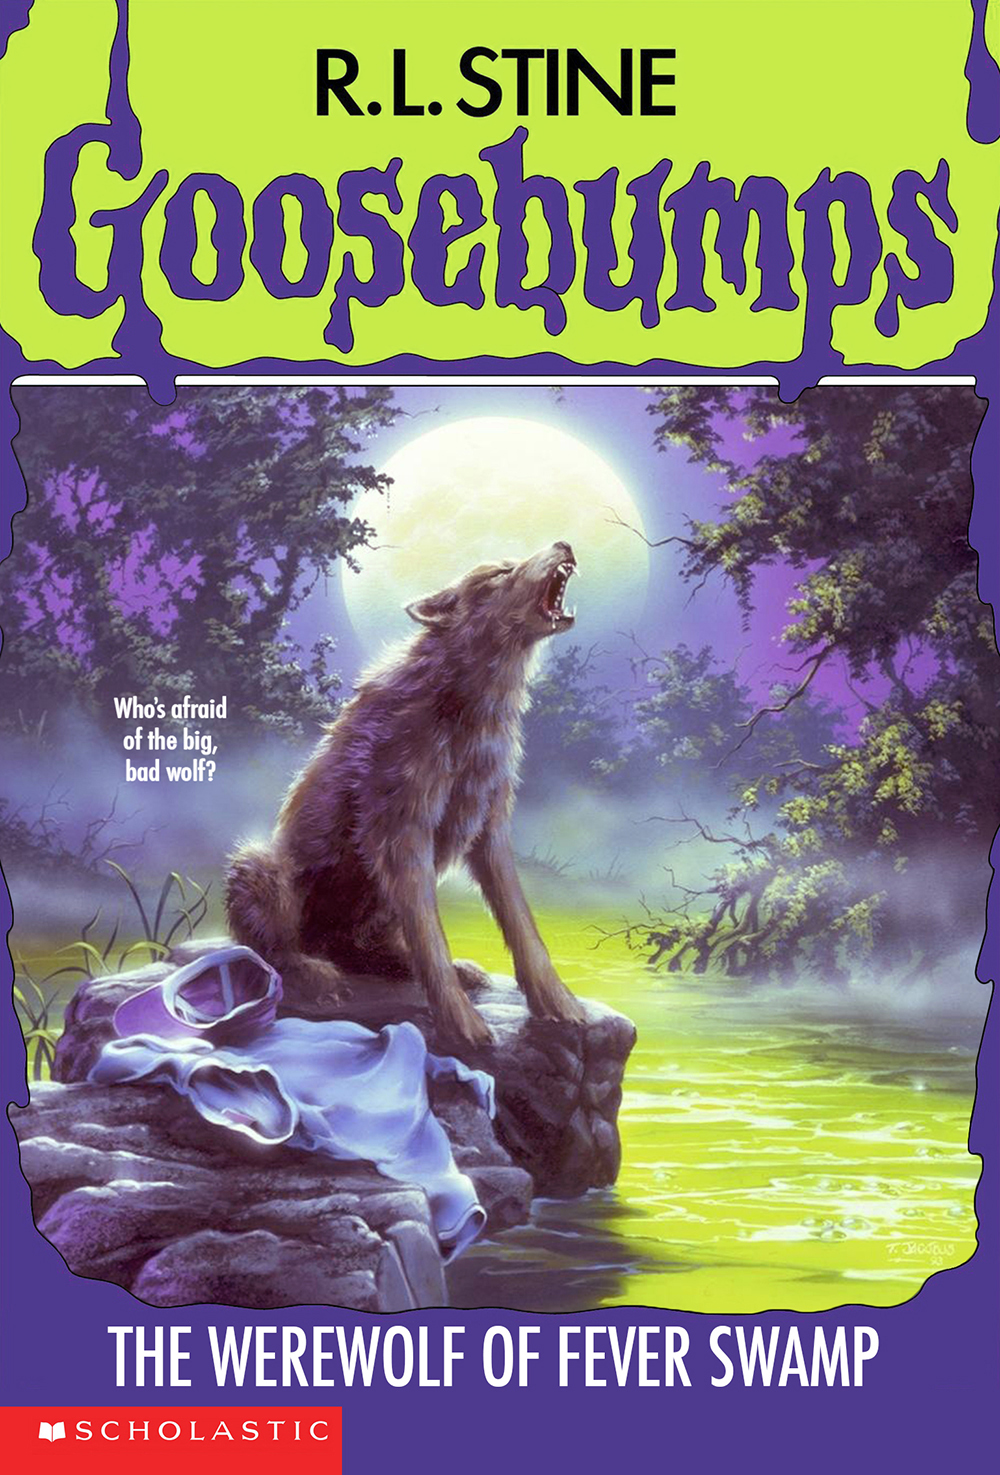 goosebumps the werewolf in the living room image the of fever swamp cover jpg 27231